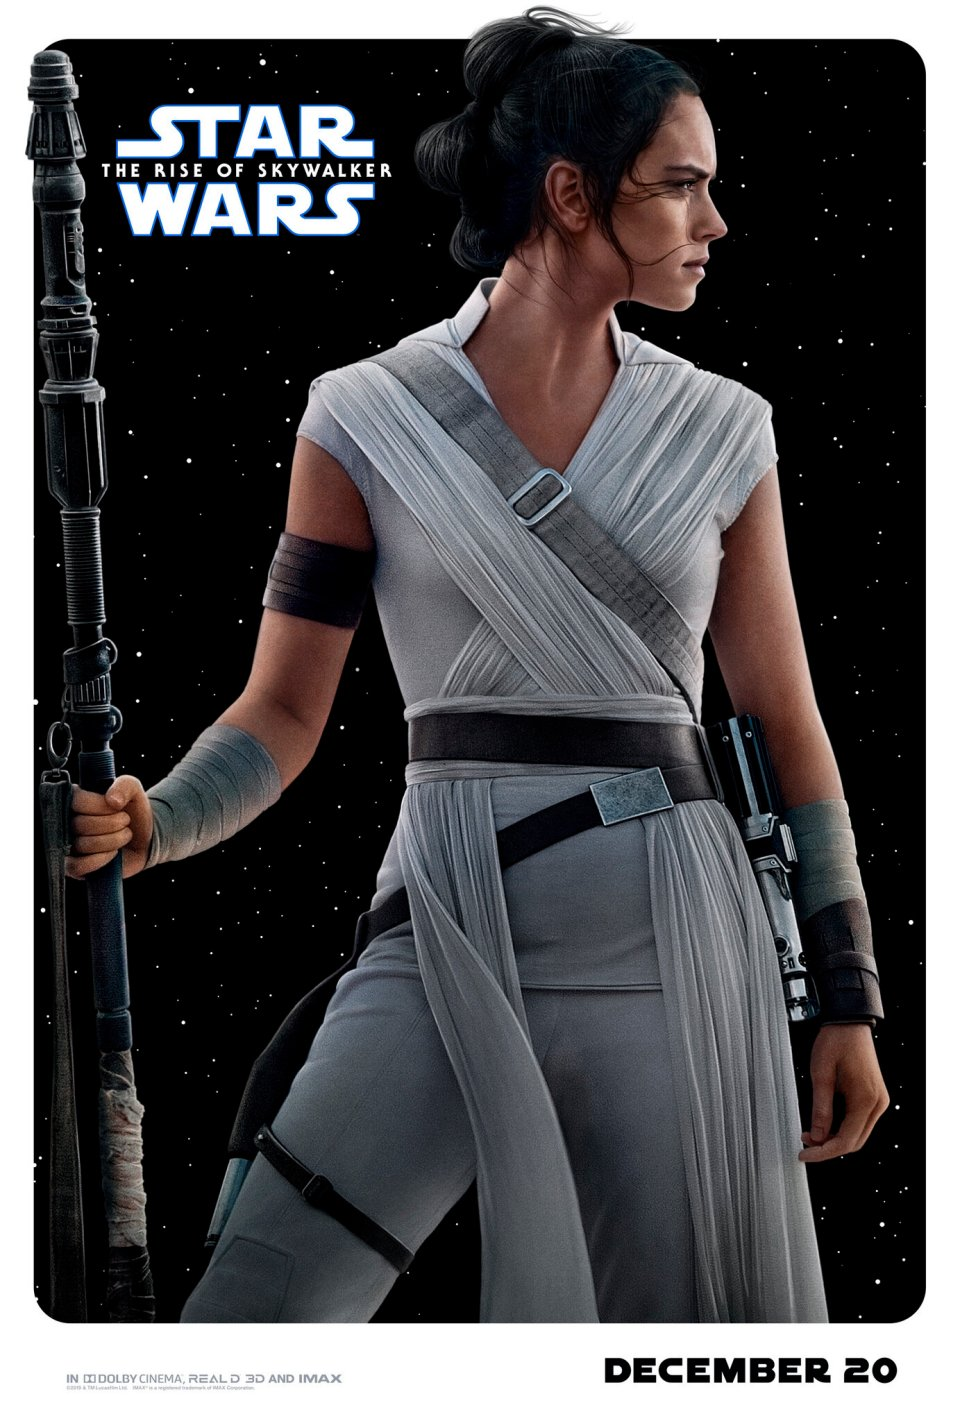 11-character-posters-released-for-star-wars-the-rise-of-skywalker2.jpg